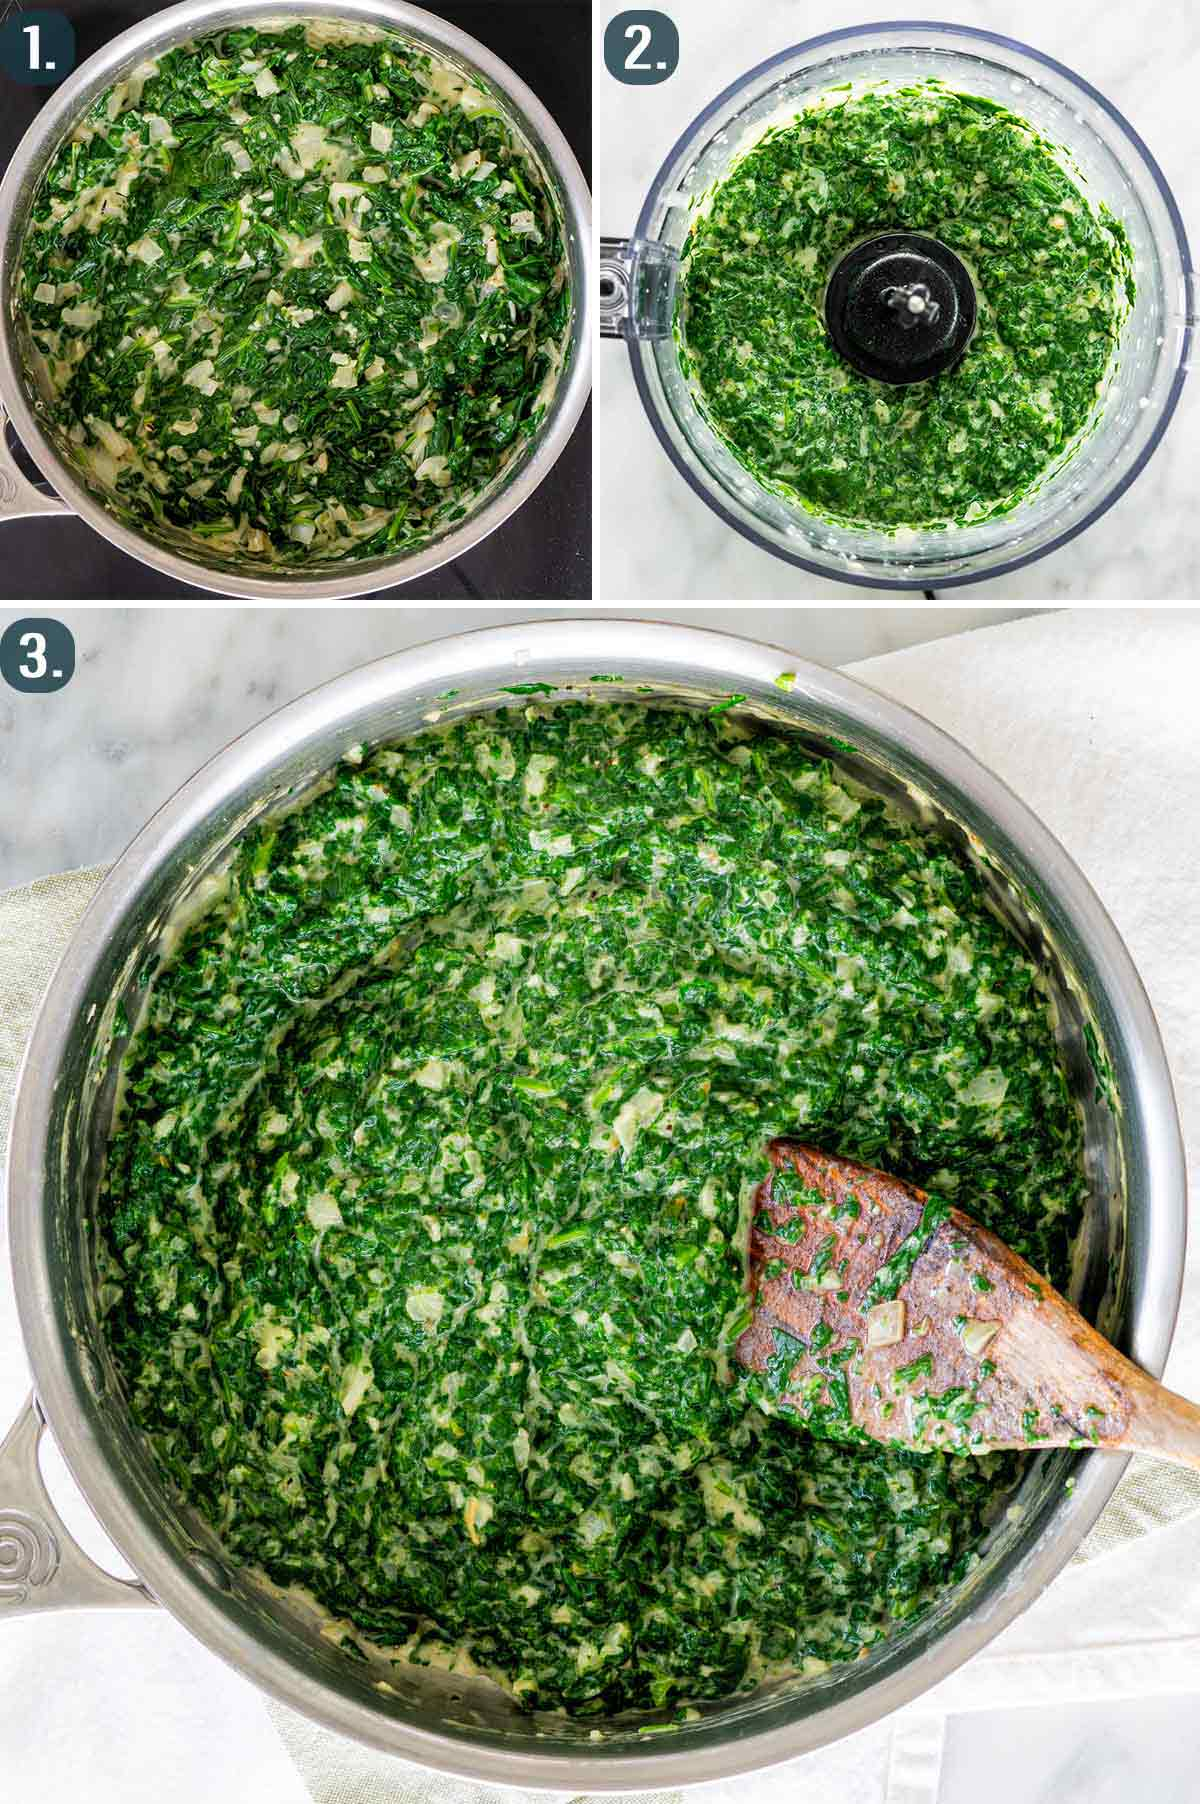 process shots showing how to process cream spinach and make it smooth.